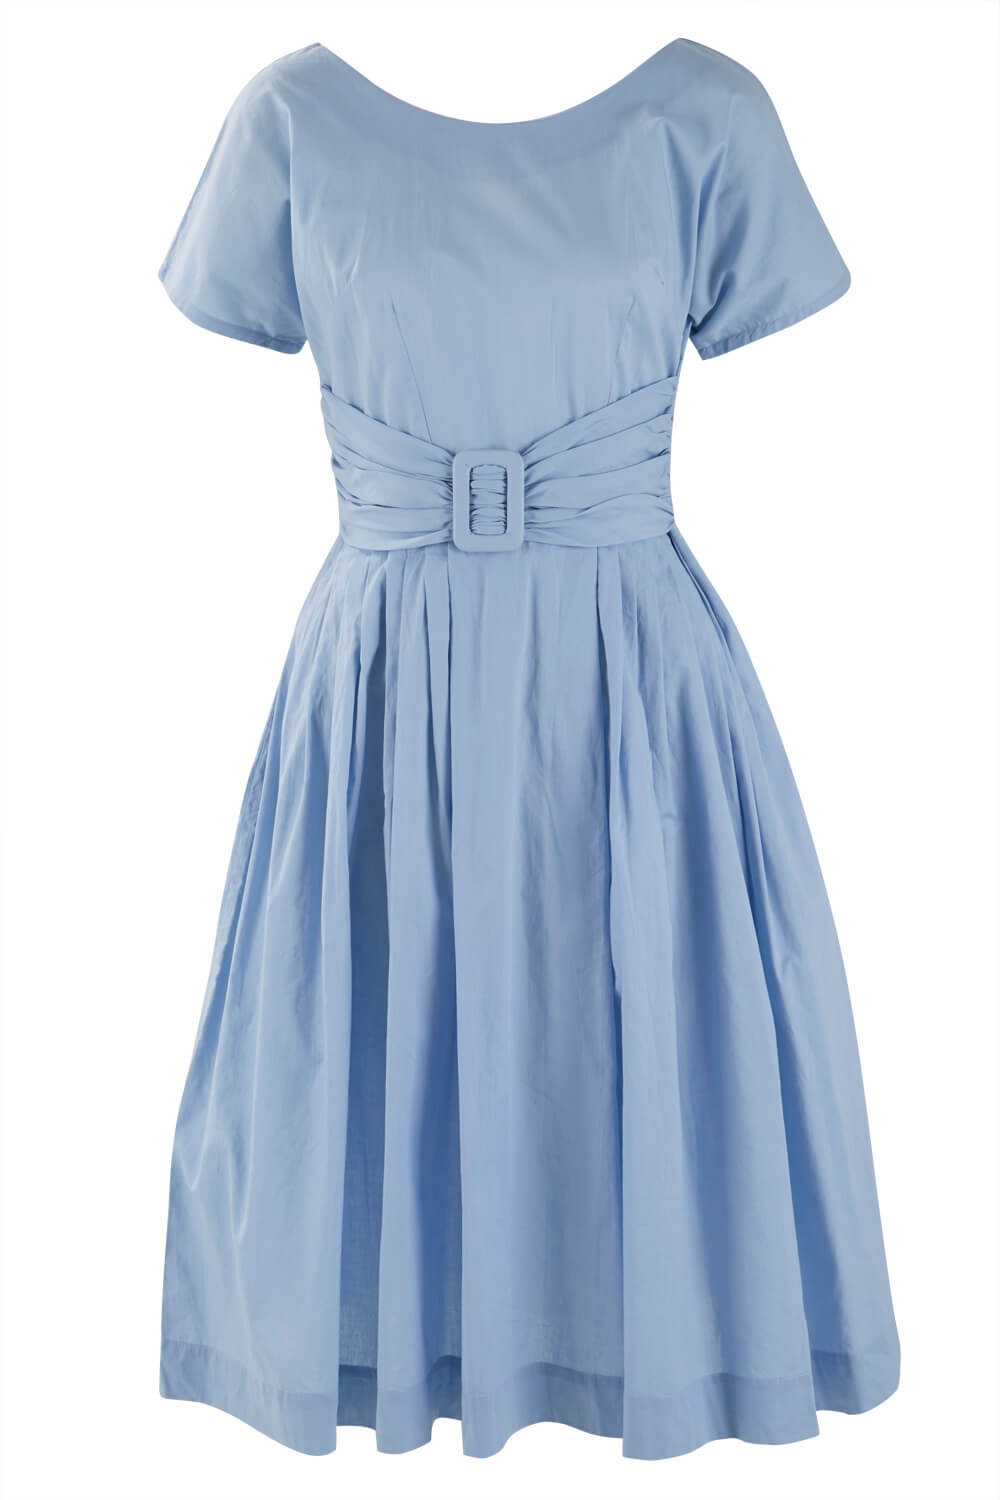 Womens Vintage Style Short sleeve Dress